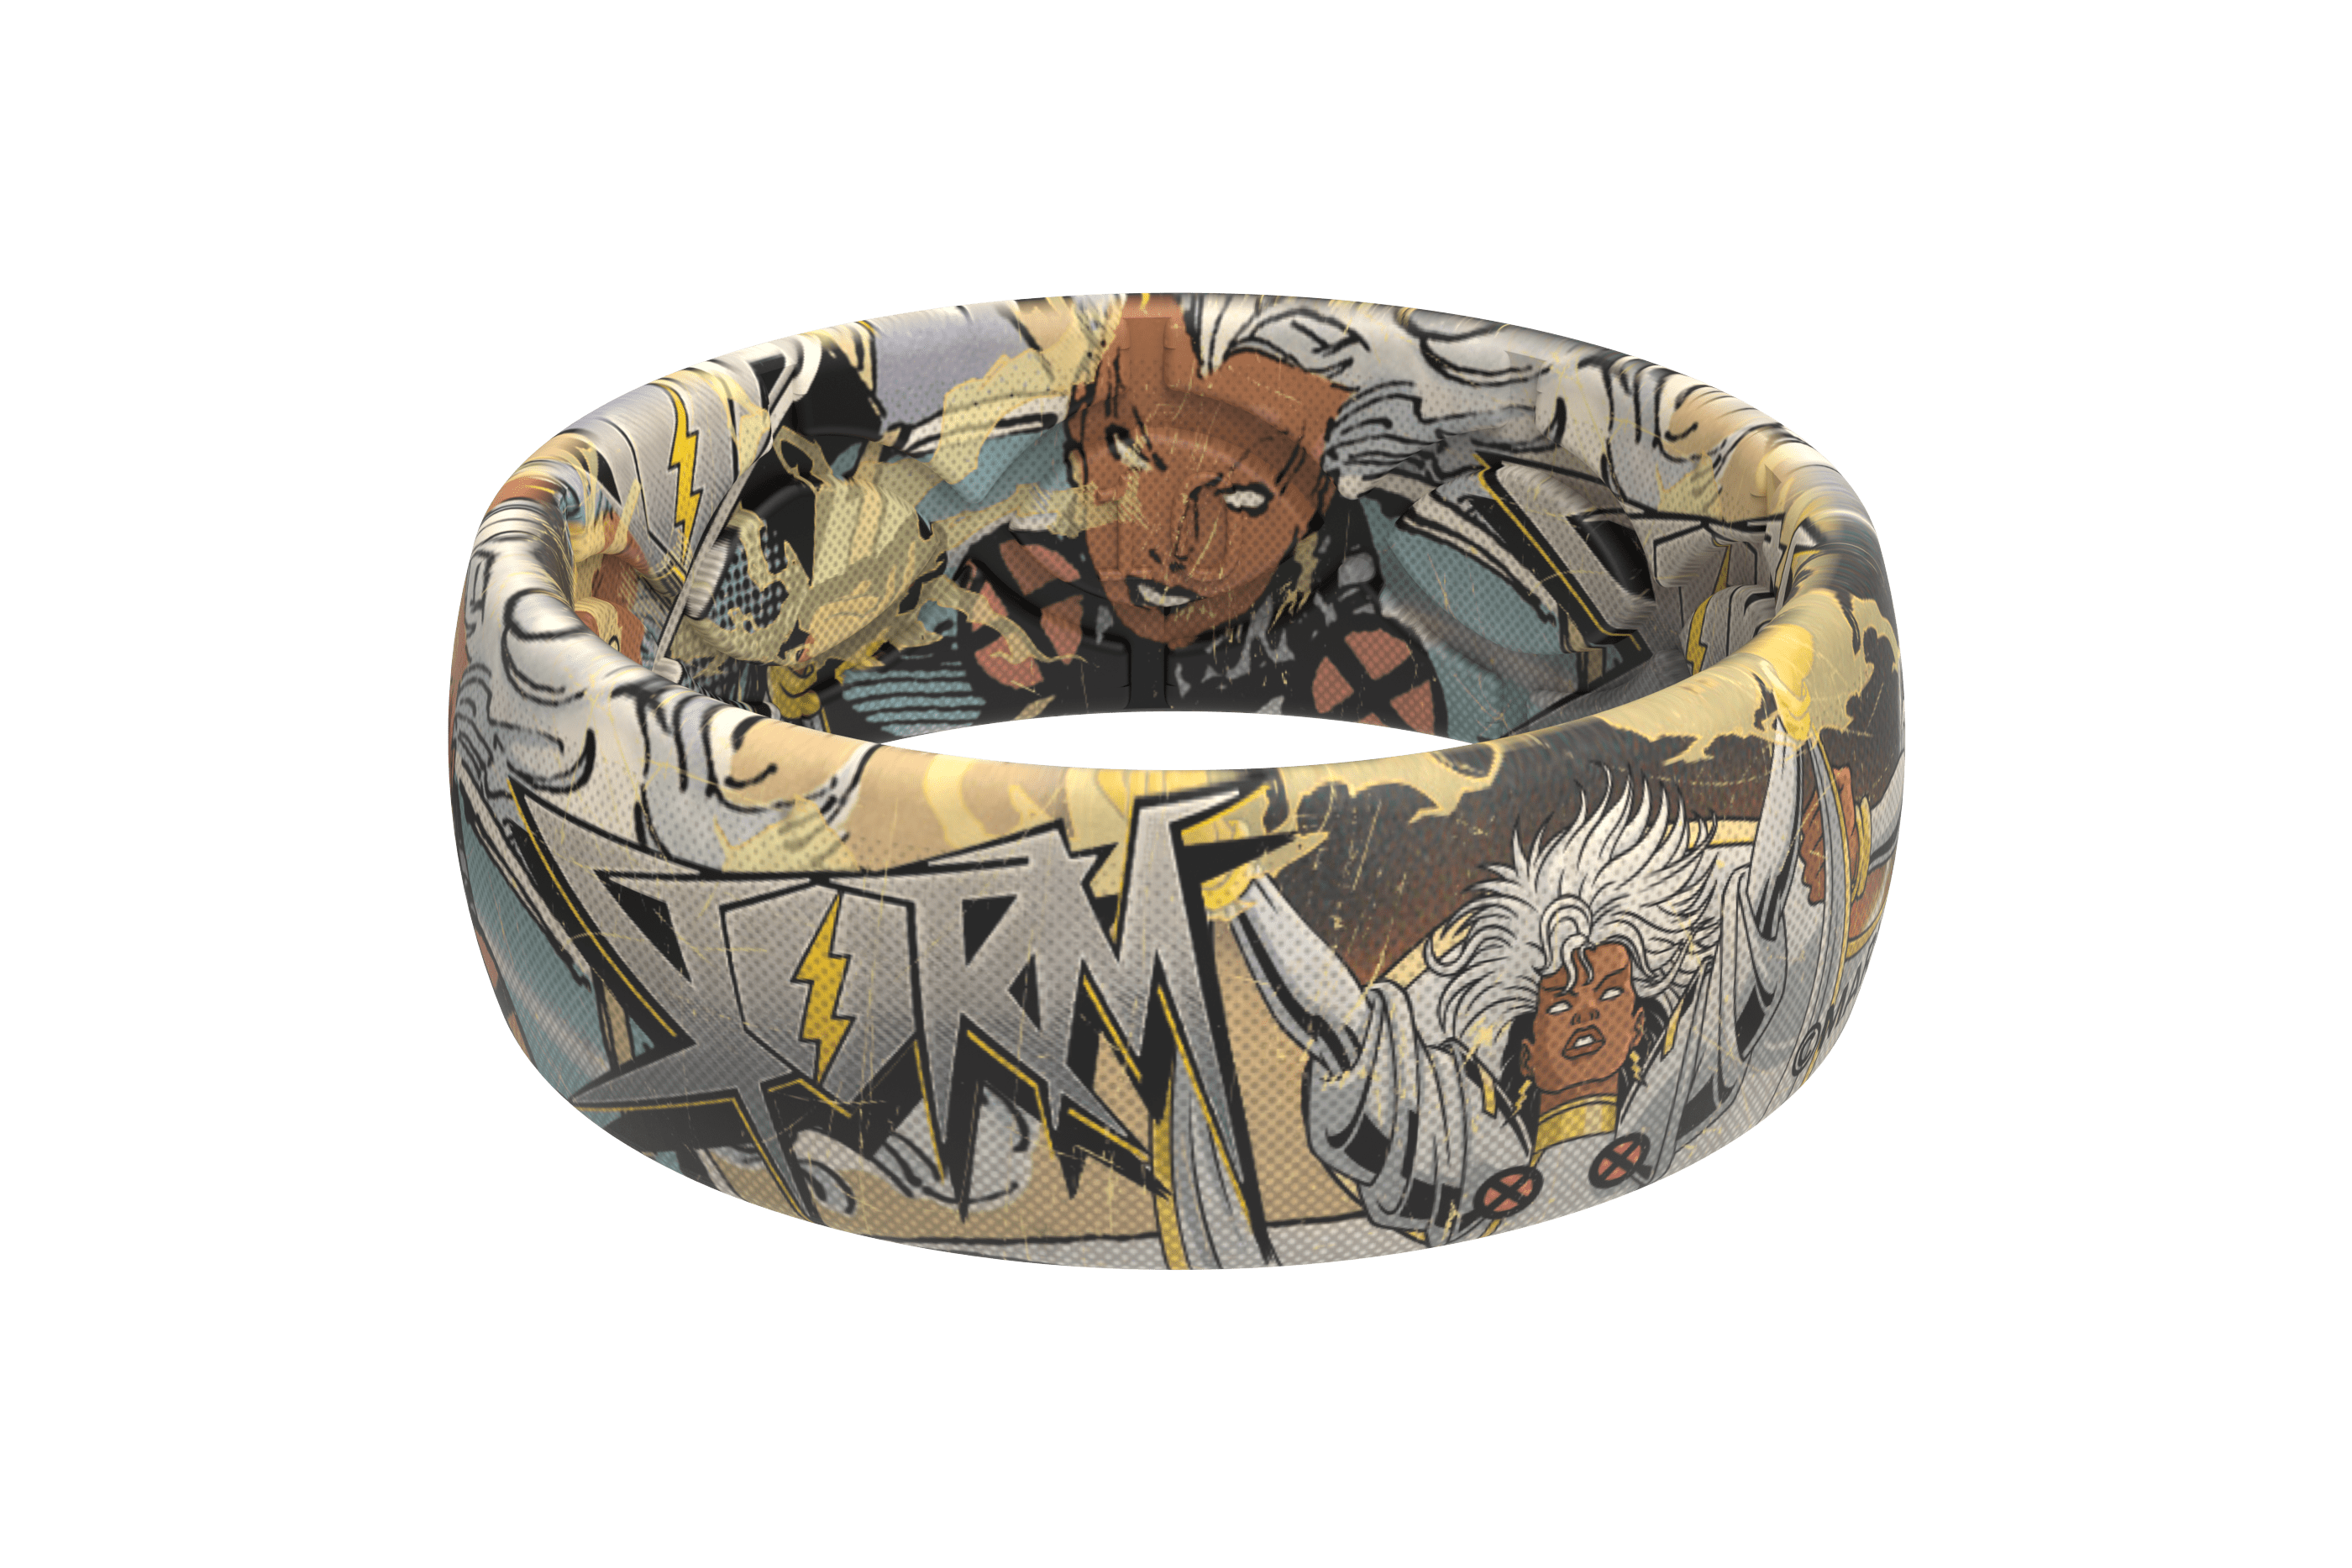 Storm Classic Comic Ring viewed front on